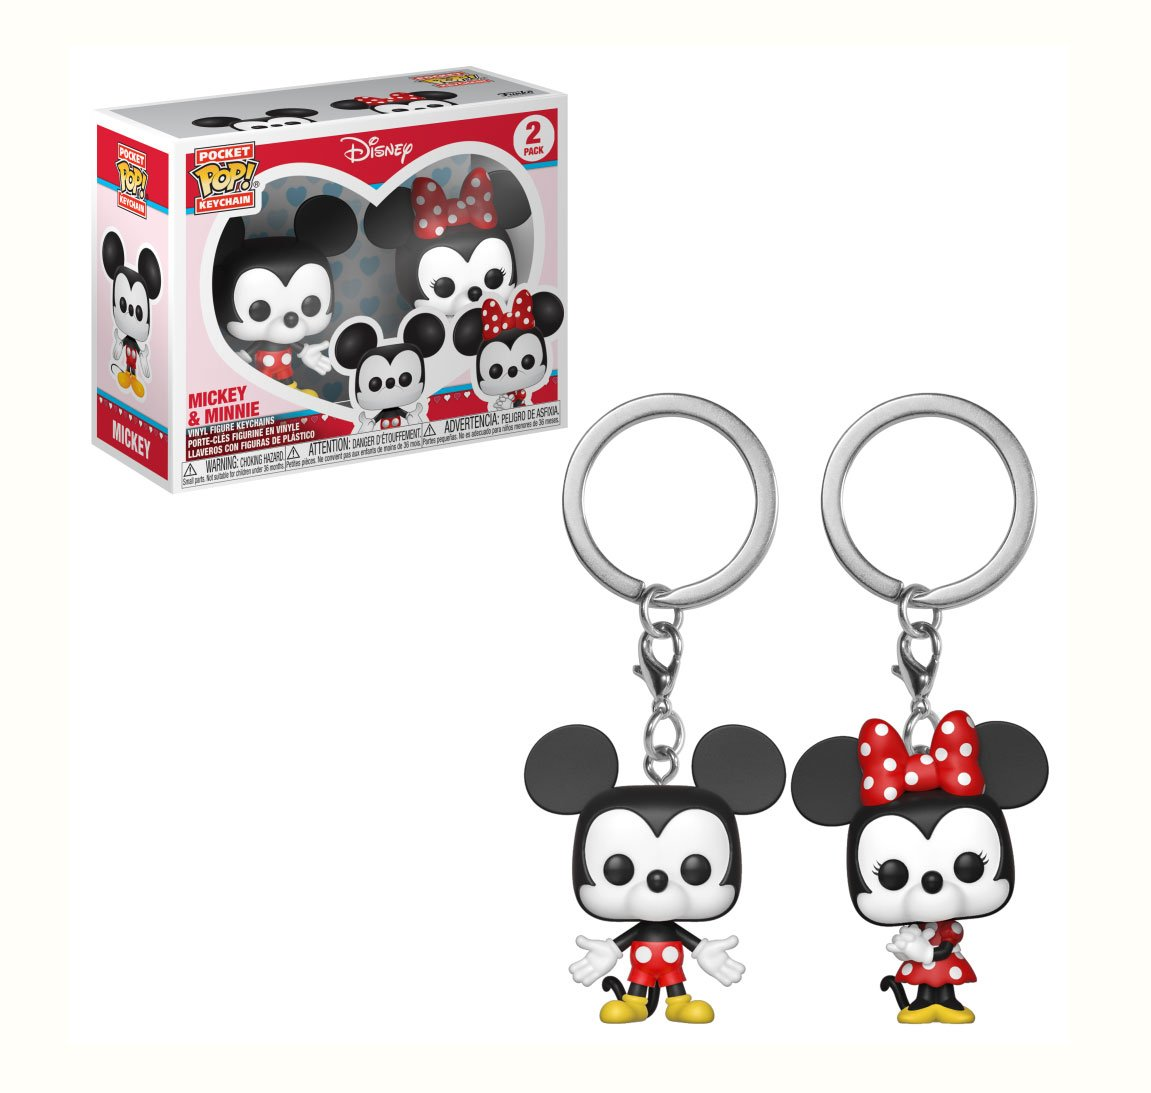 RT & follow @OriginalFunko for a chance to WIN a Mickey & Minnie Pocket Pop! keychain 2-Pack.